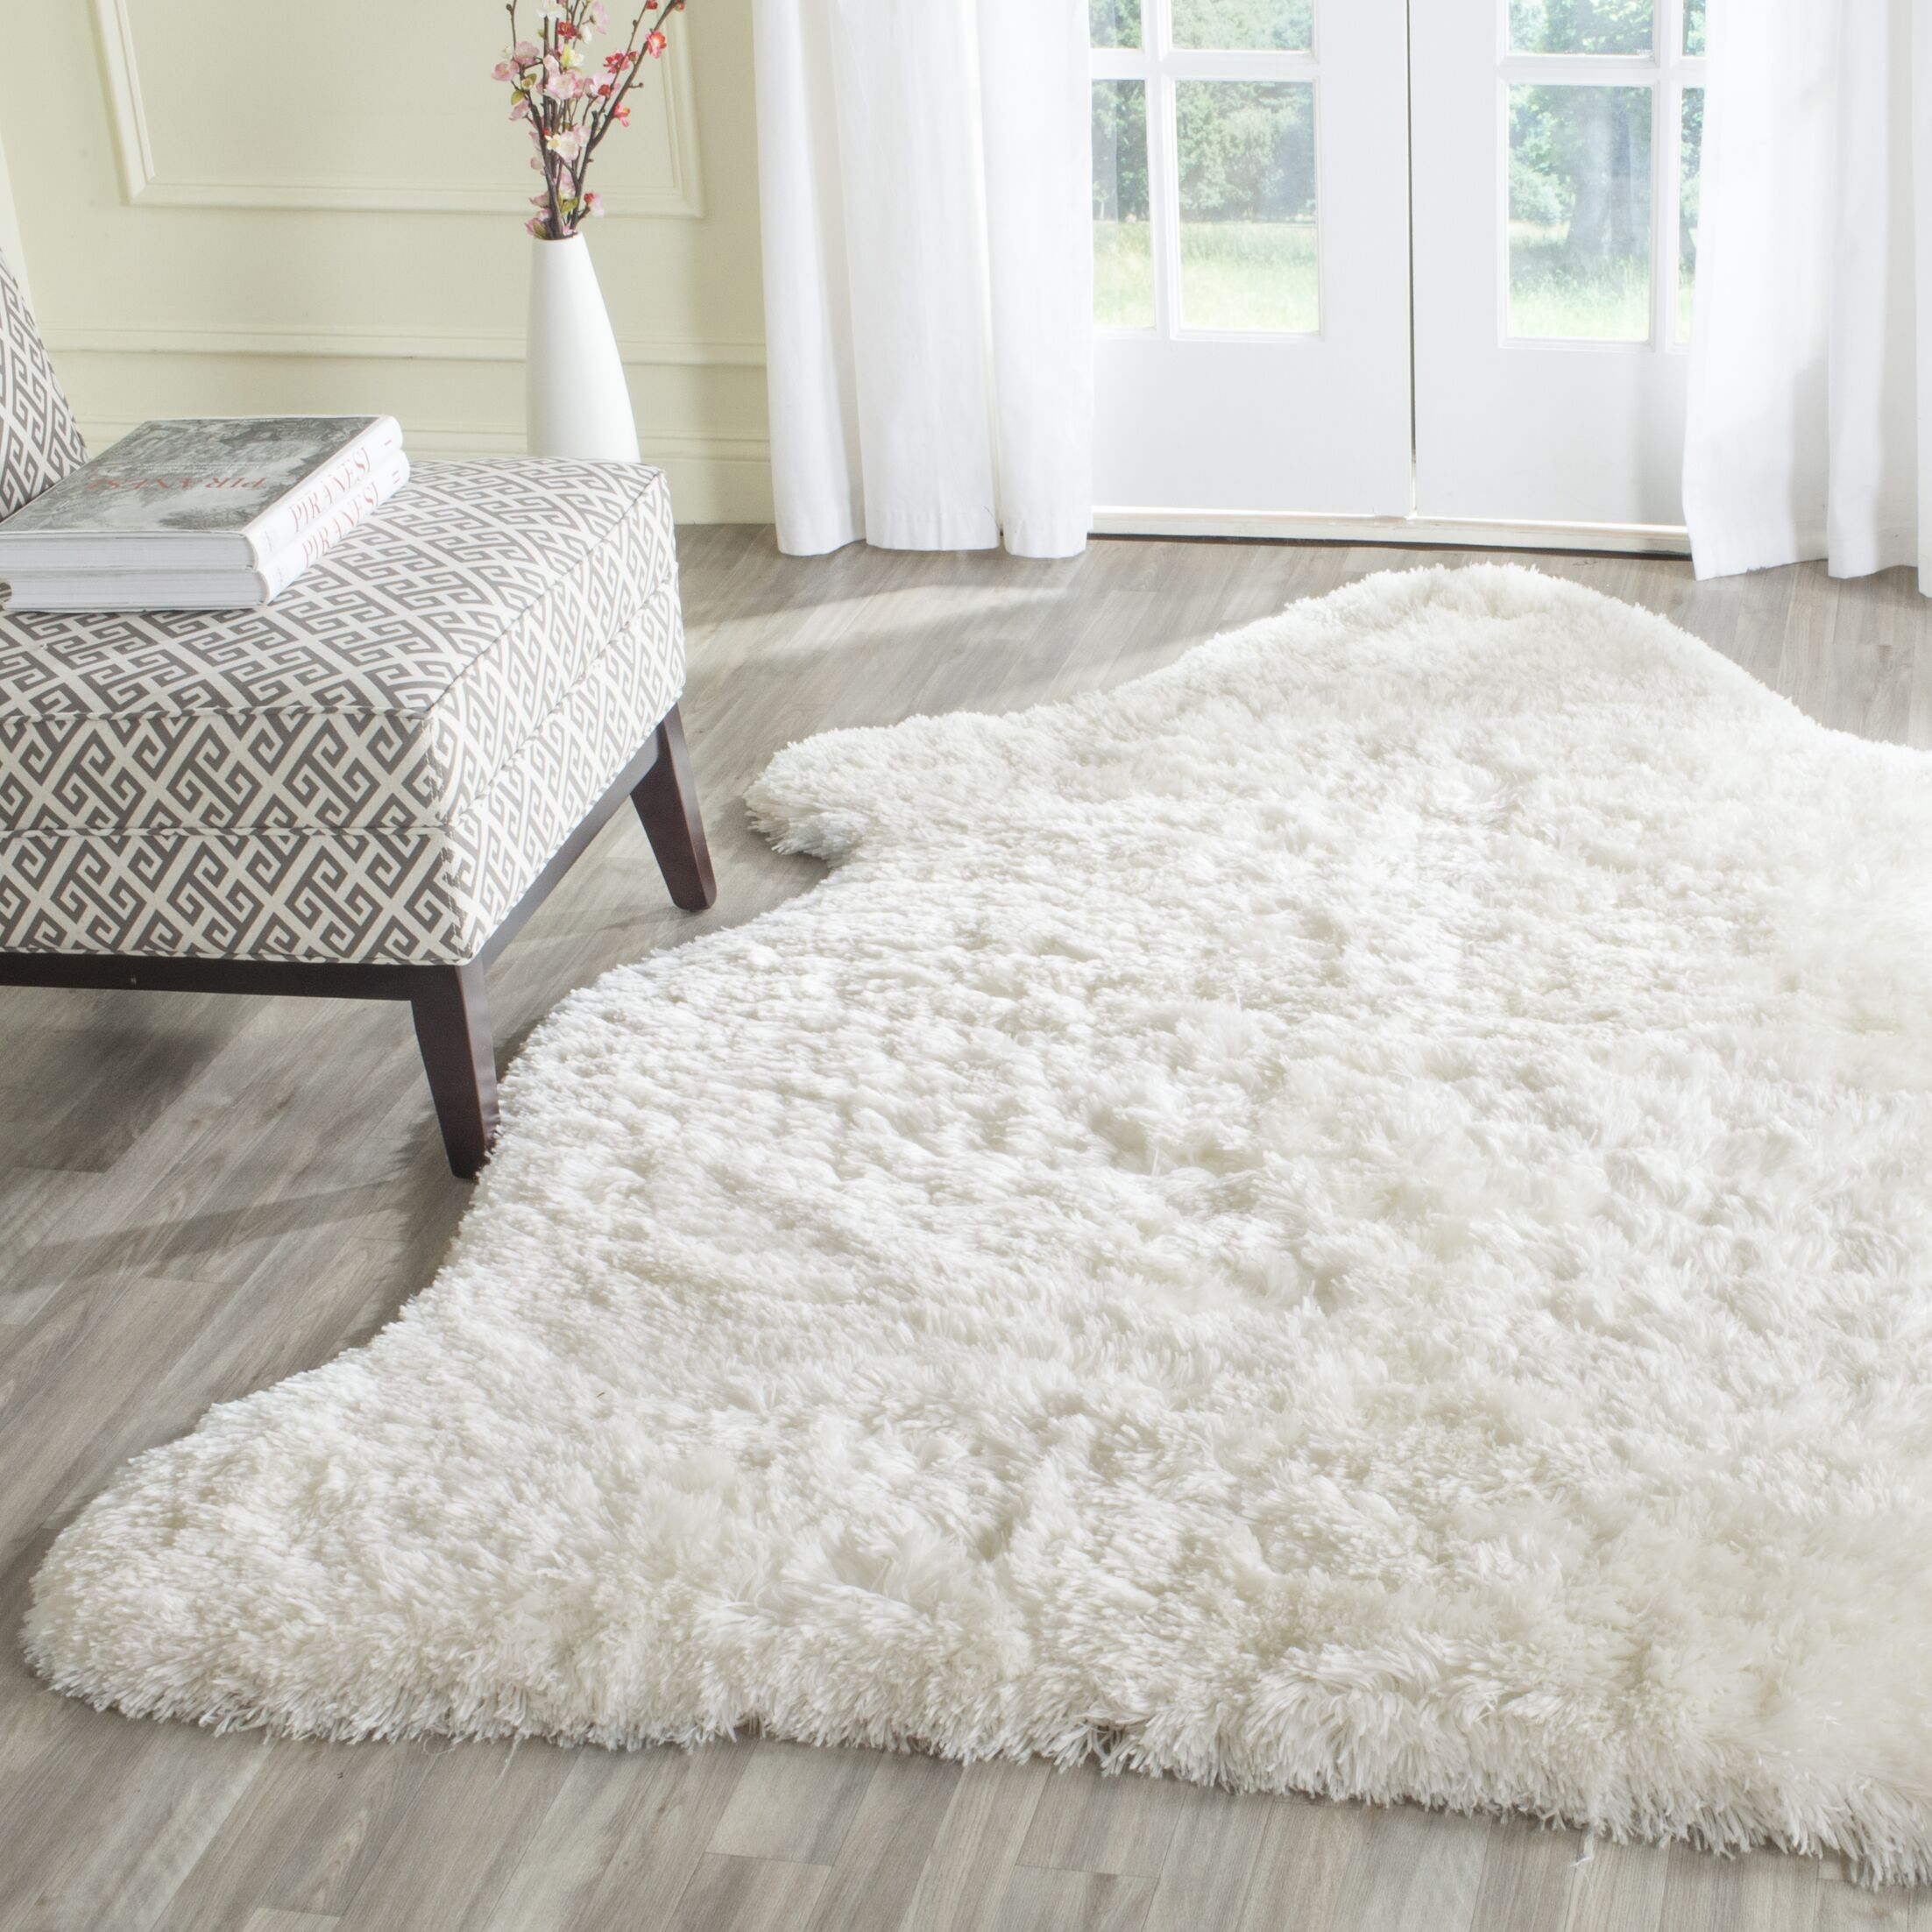 Chantrell Hand-Tufted/Hooked Ivory Area Rug Rug Size: Rectangle 5' x 7'